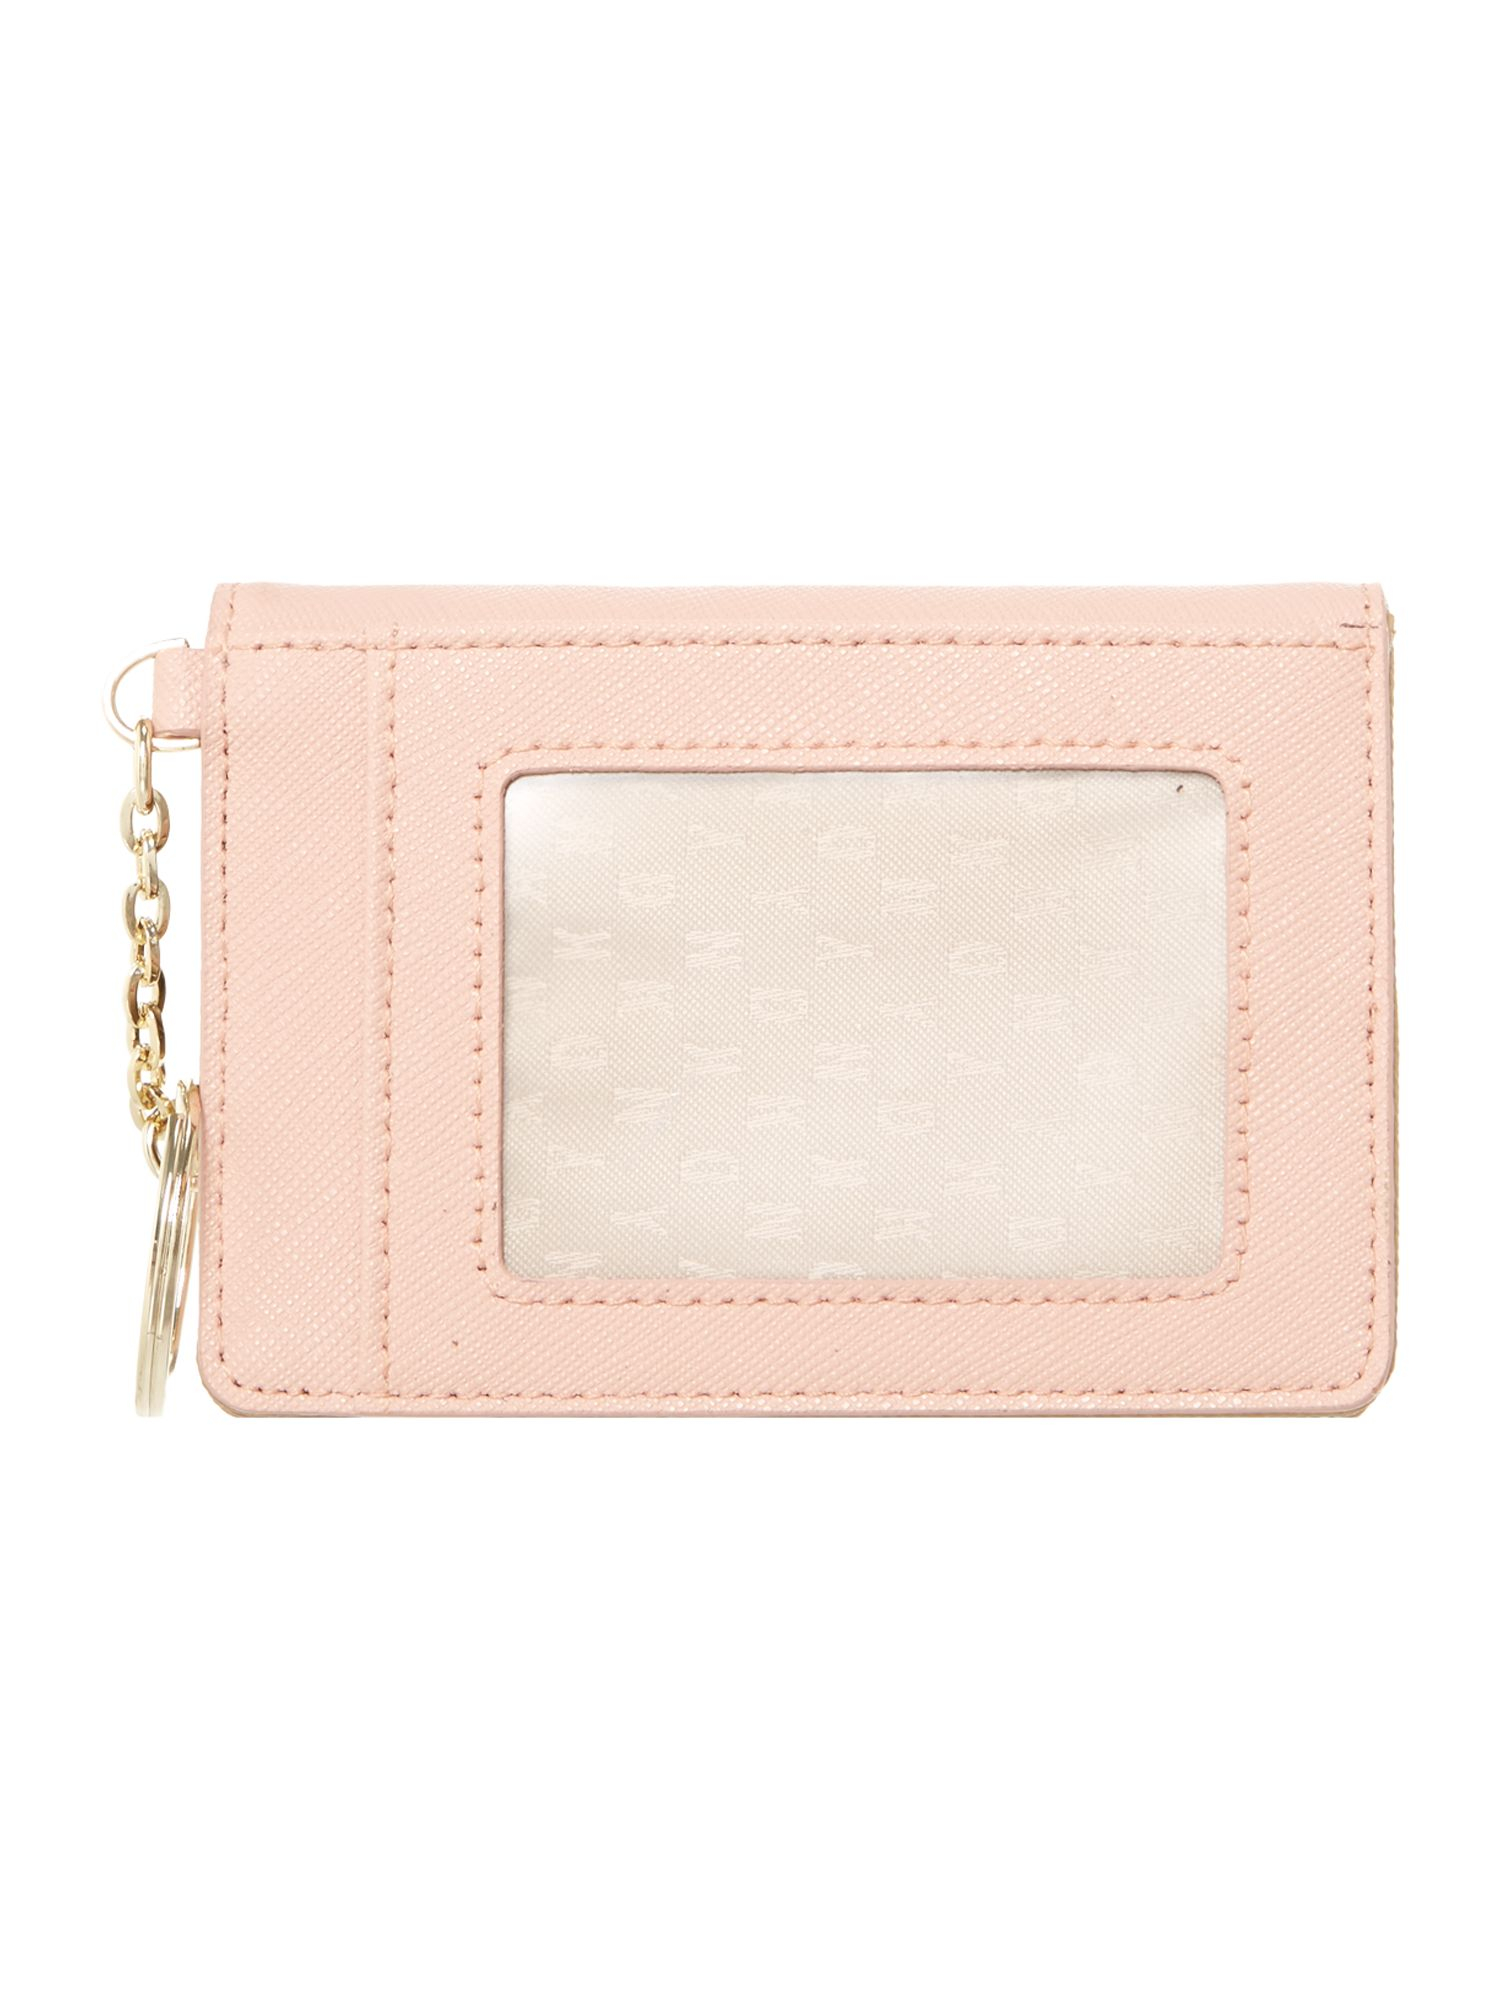 dkny saffiano light pink card holder with keyring in lyst - Card Holder With Keyring